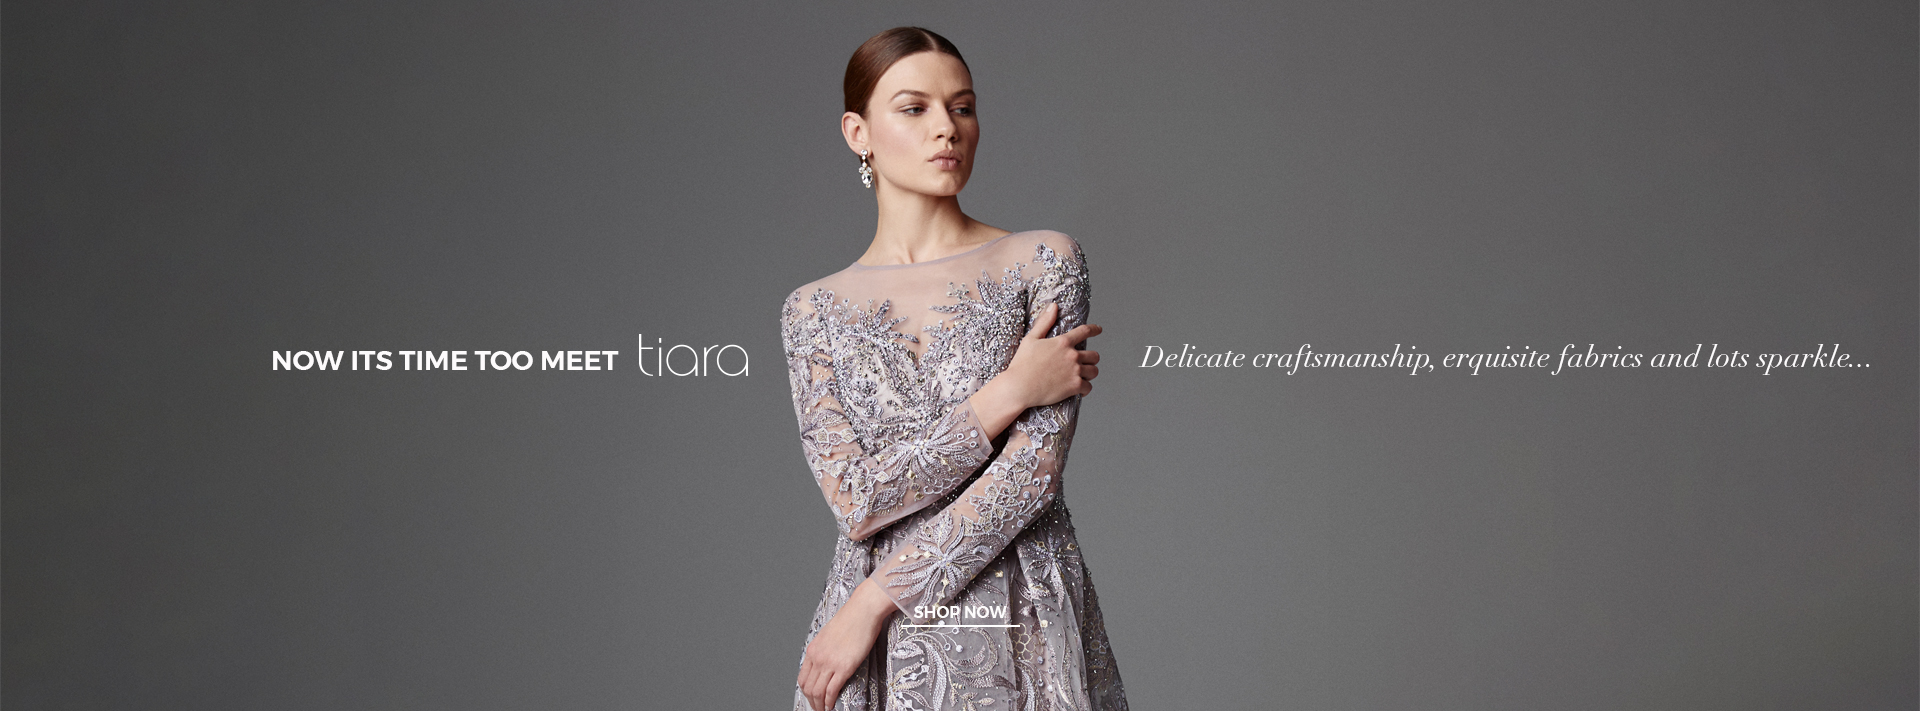 TIARA Evening Dress